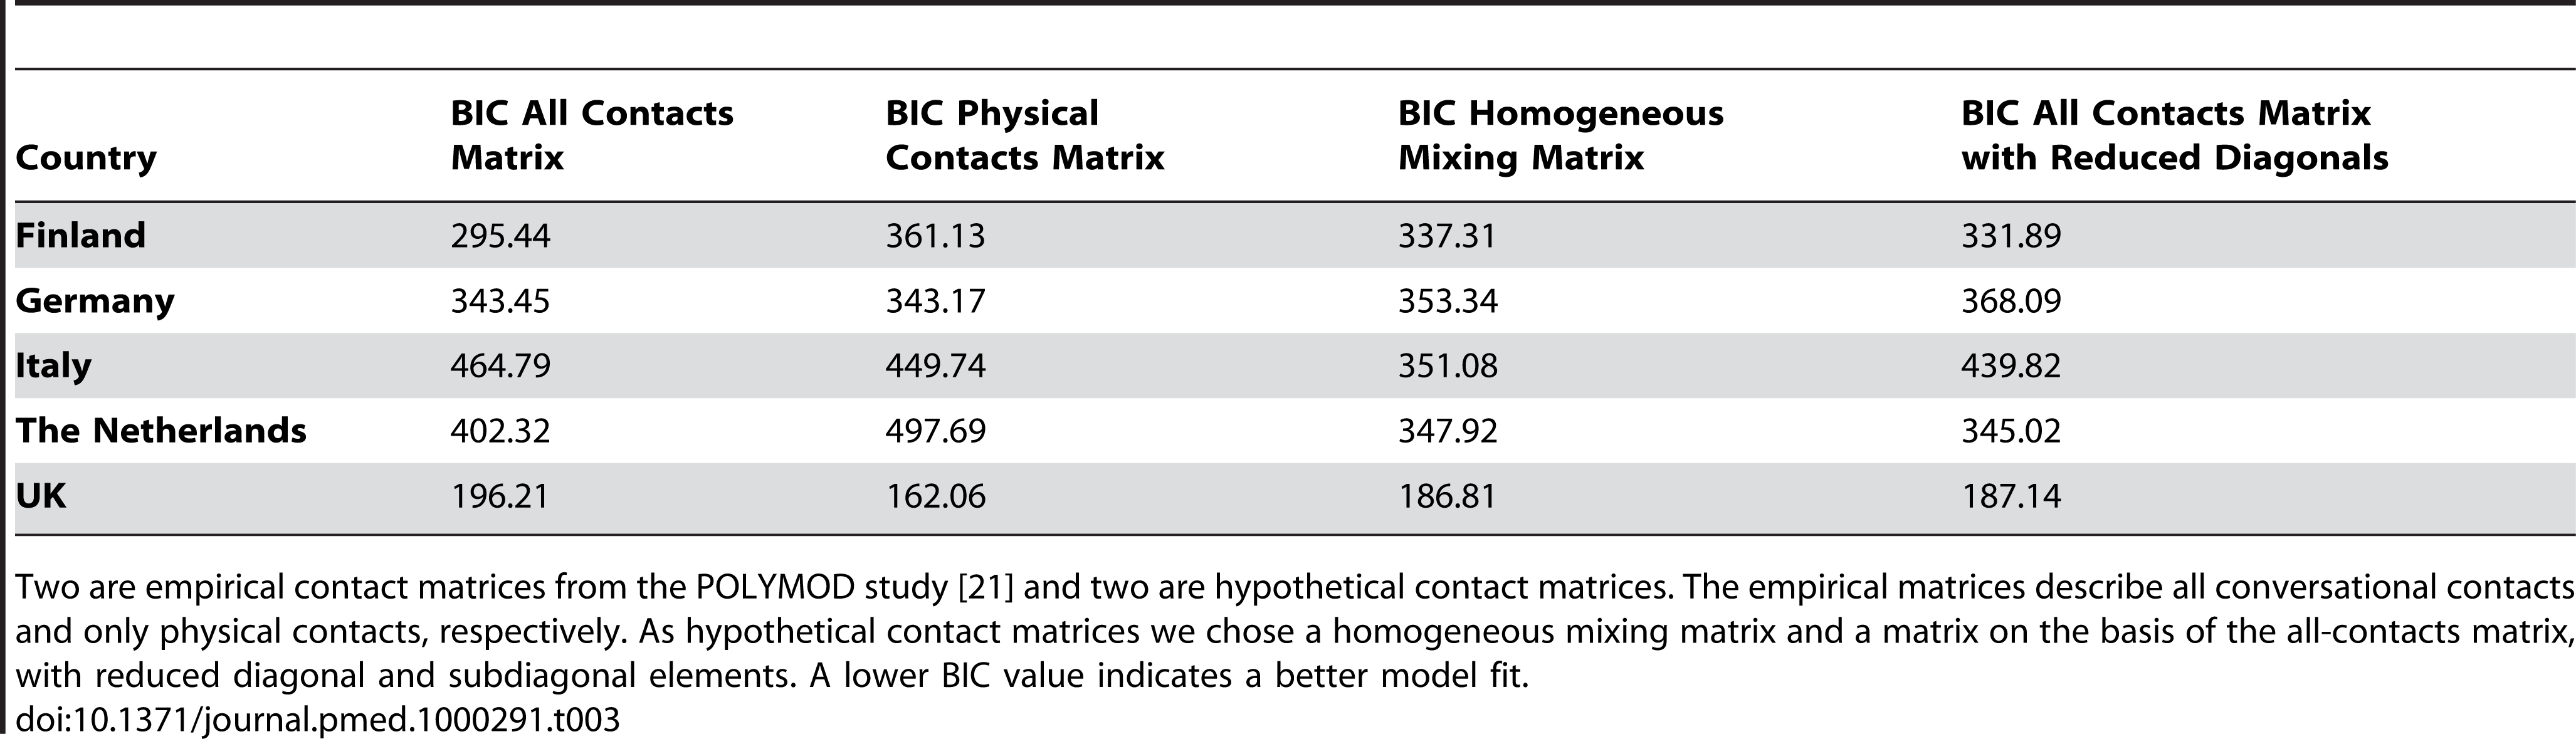 BIC values for model fit with four different contact matrices.